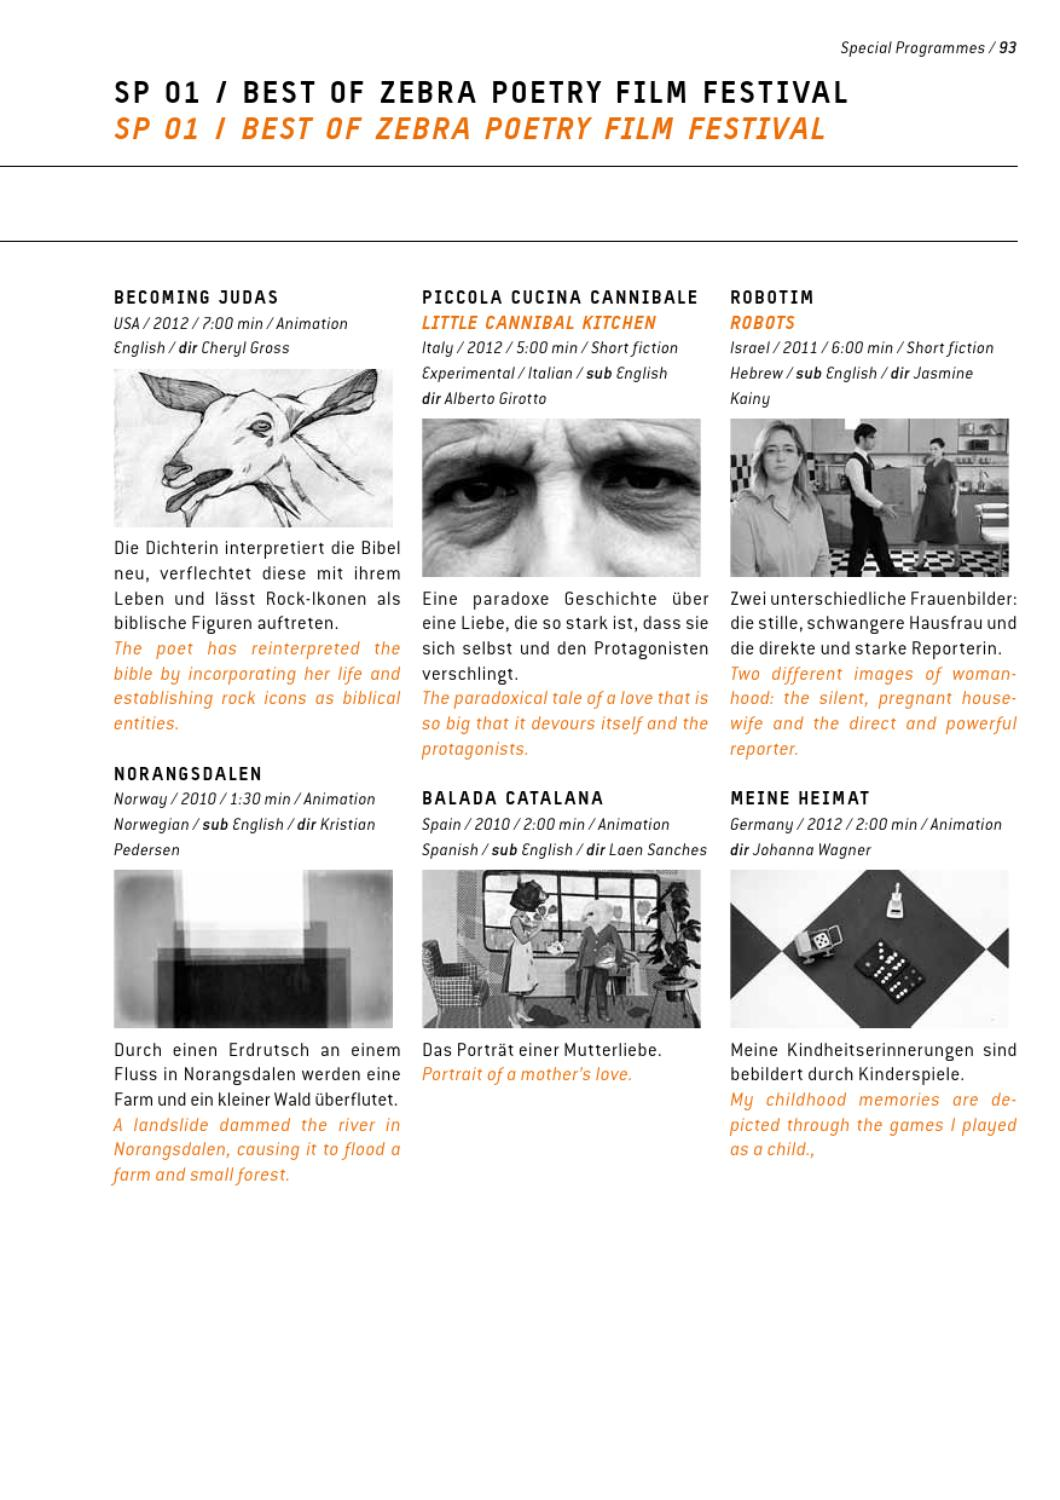 Festival Catalogue Part 2 Special Programs By Interfilm Berlin Issuu